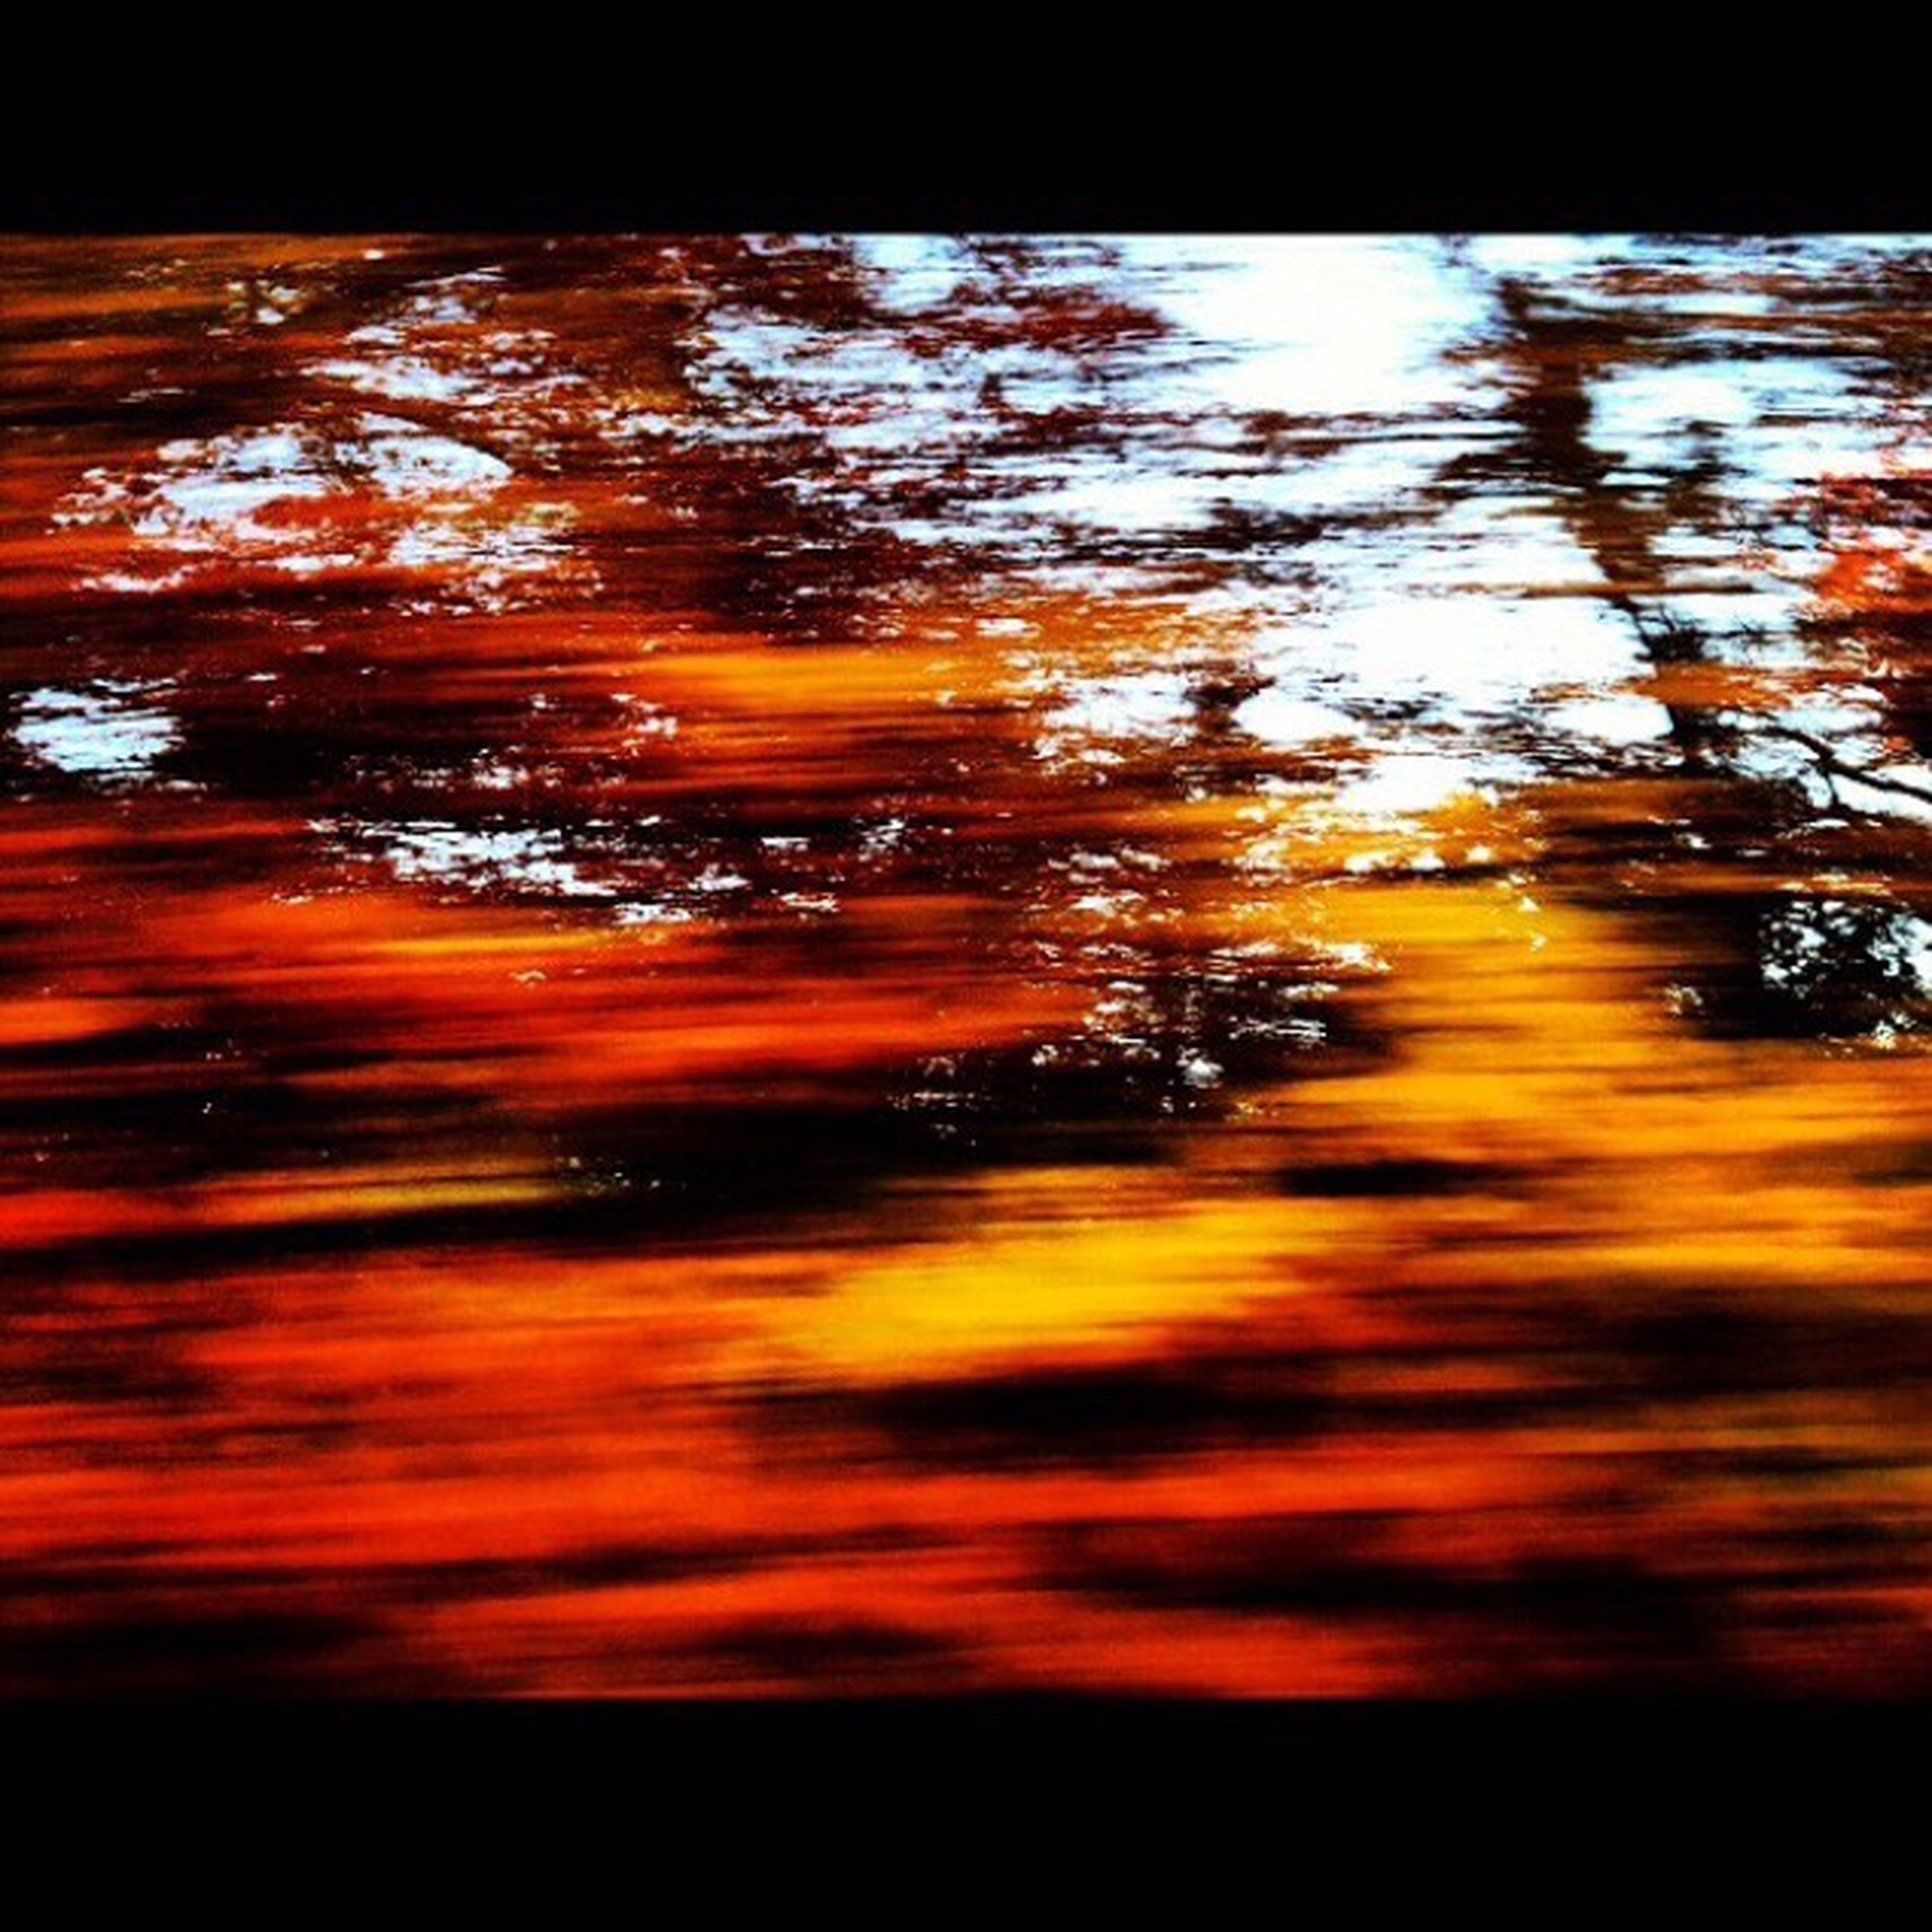 sunset, orange color, tree, nature, reflection, beauty in nature, water, silhouette, yellow, scenics, tranquility, auto post production filter, no people, tranquil scene, outdoors, sky, transfer print, sunlight, transparent, dark